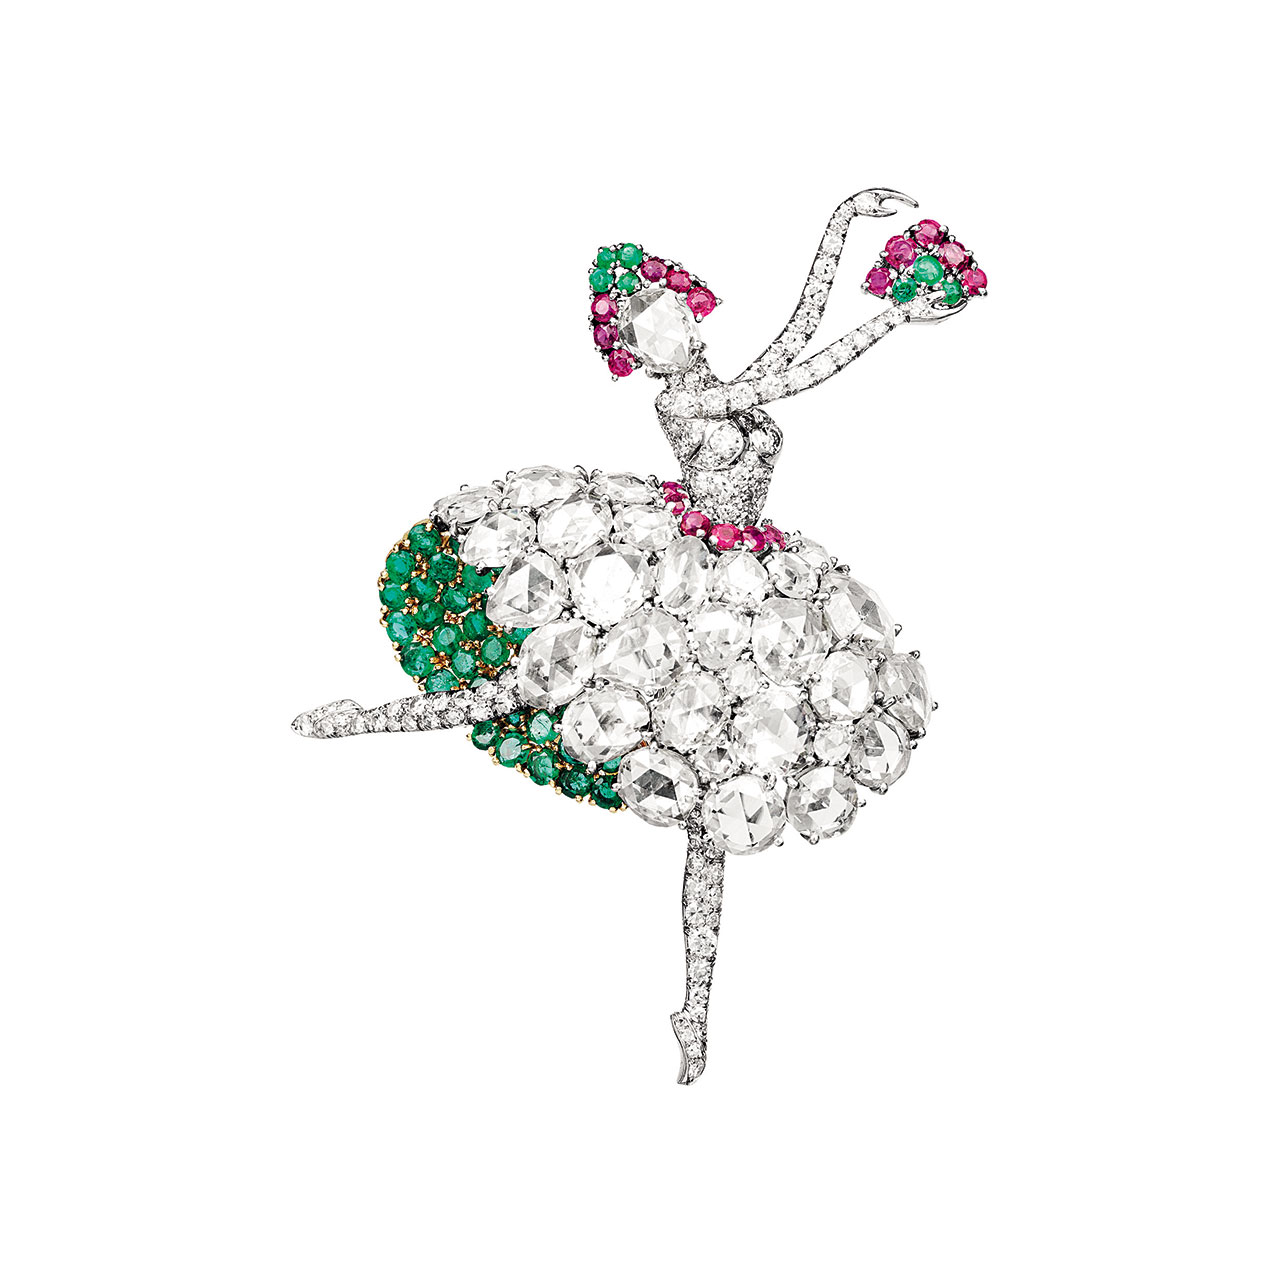 Spanish ballerina clip, 1941. Platinum, gold, rubies, emeralds, diamonds. Van Cleef & Arpels Collection. Photo by Patrick Gries © Van Cleef & Arpels.